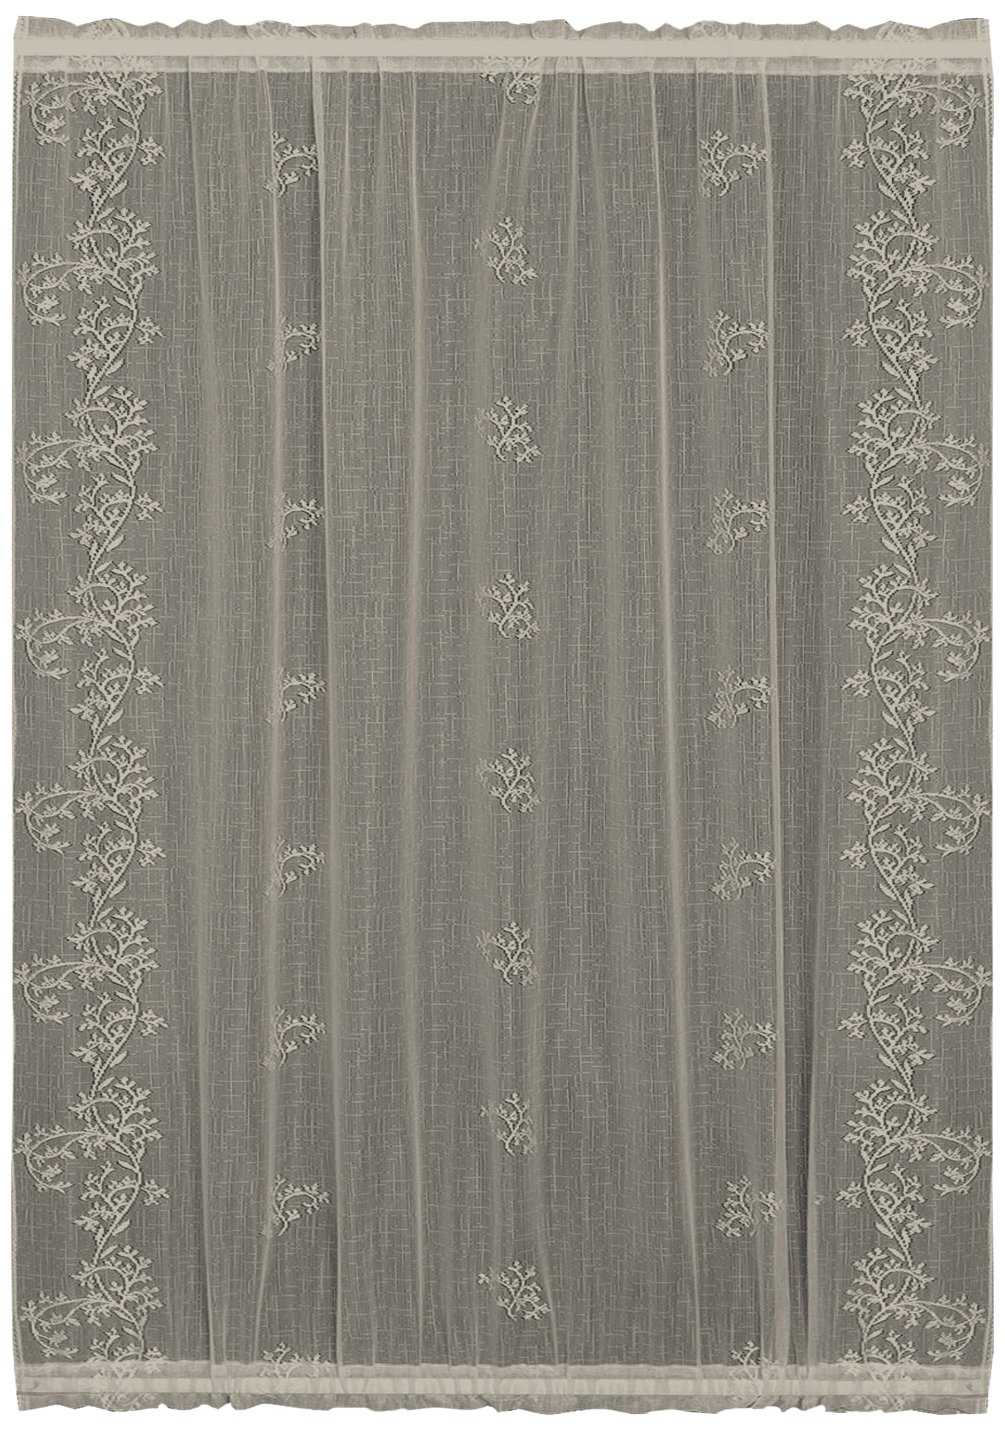 Heritage Lace Sheer Divine Door Panel Flax 42 by 72-Inch